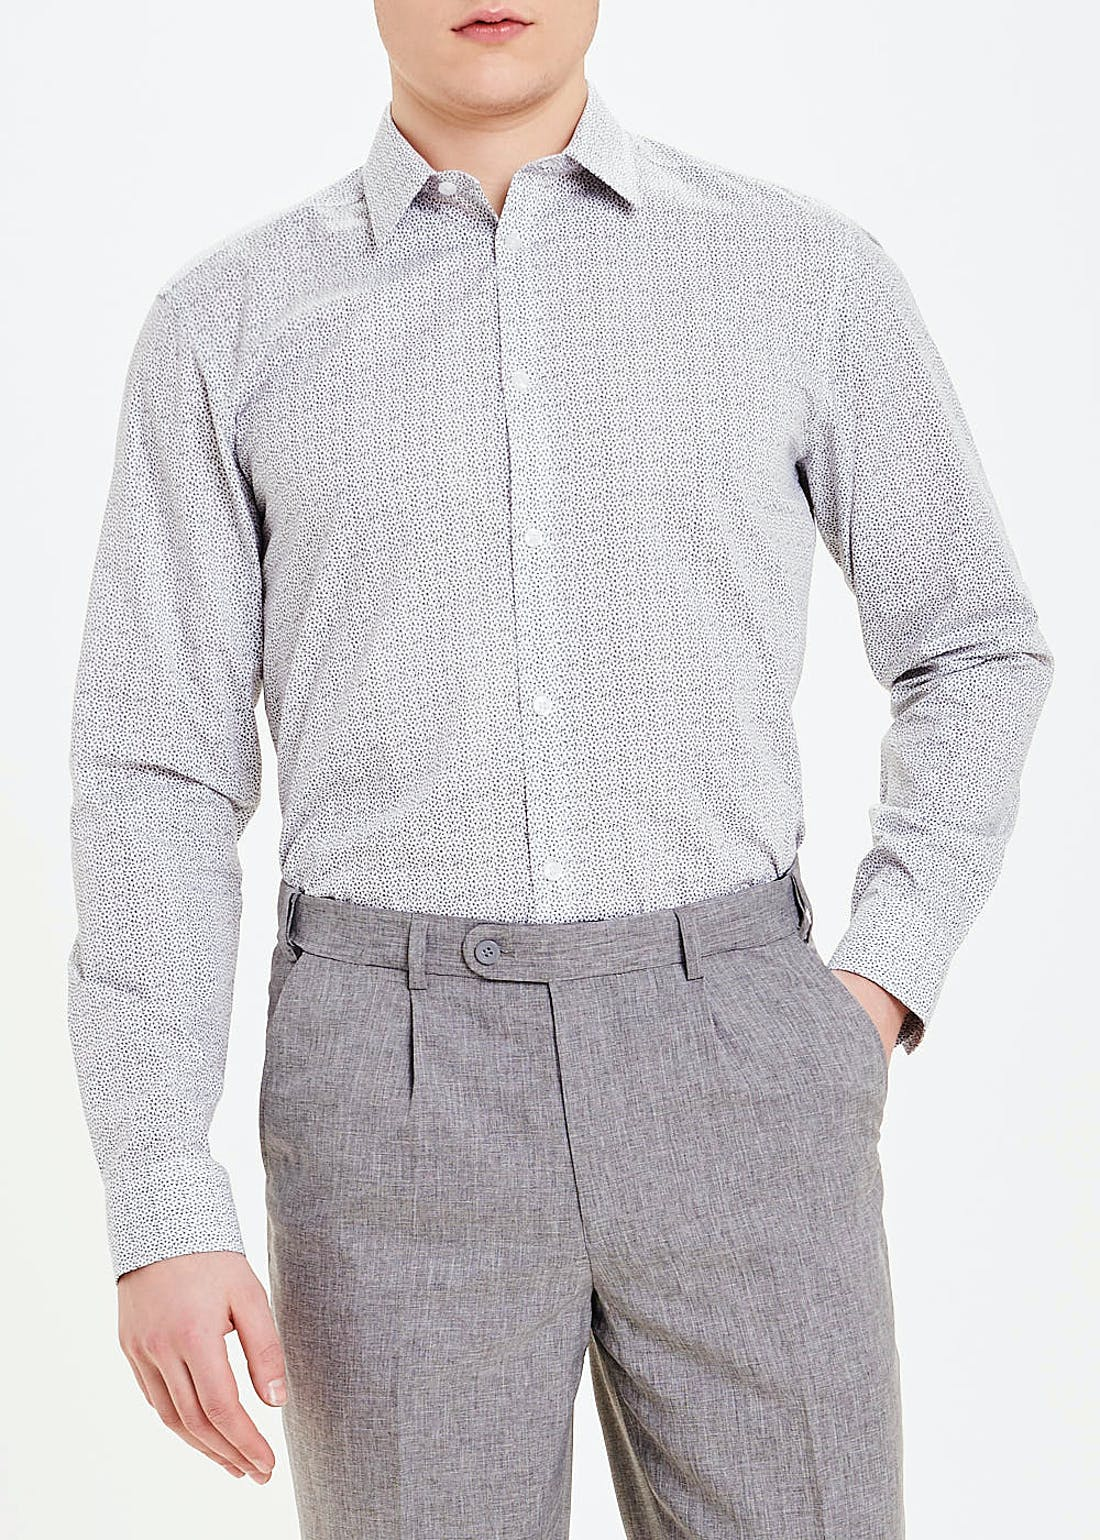 Taylor & Wright 2 Pack Regular Fit Long Sleeve Shirts